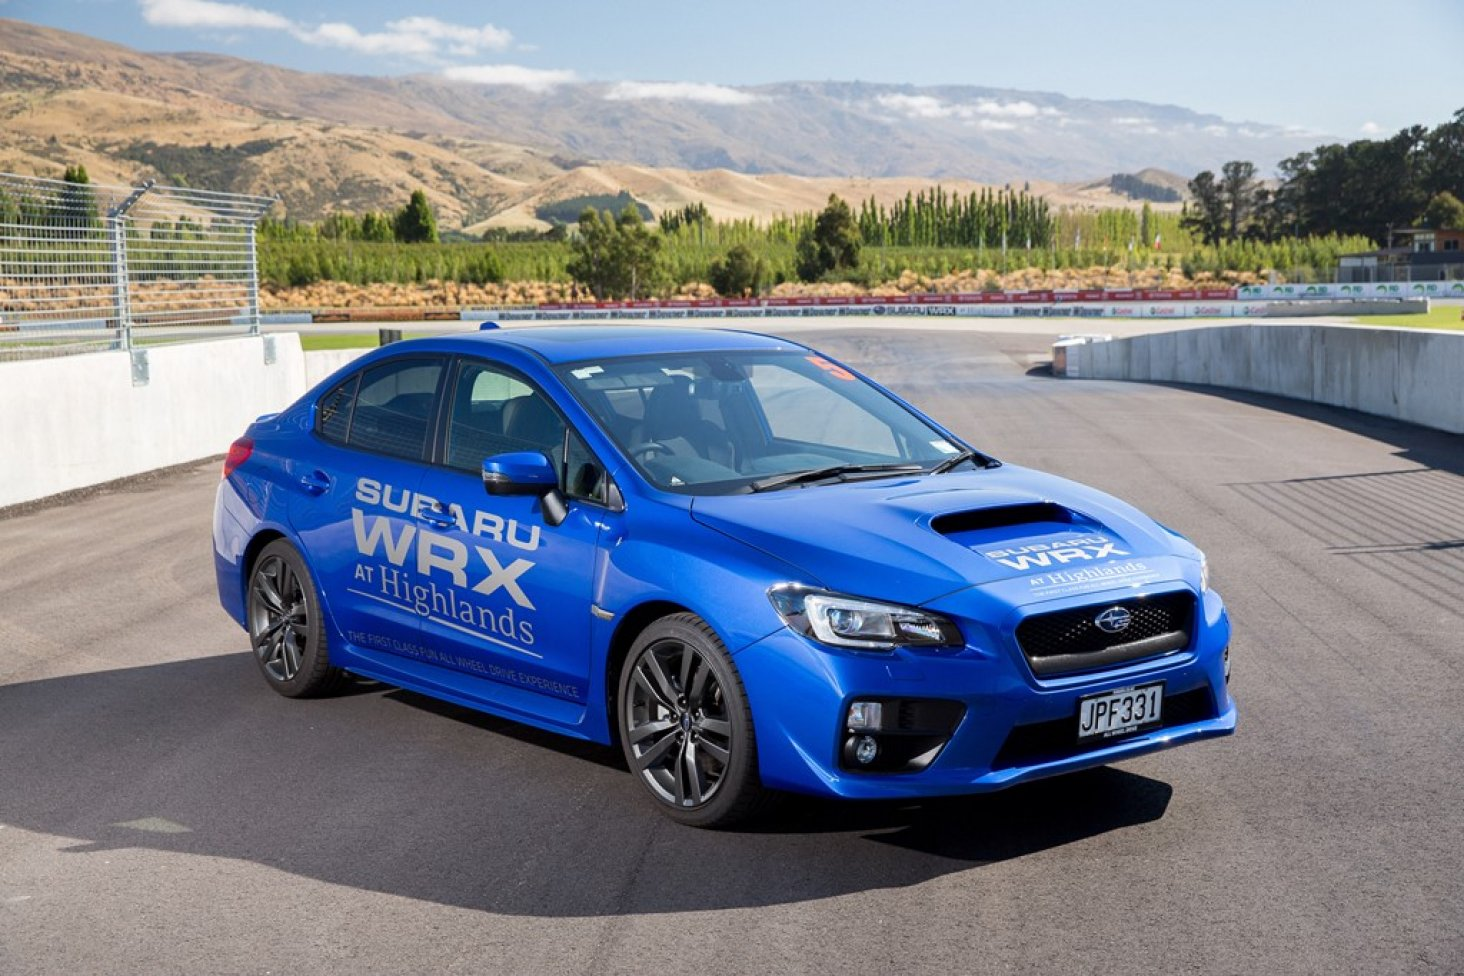 Highlands launches new Subaru WRX Experience